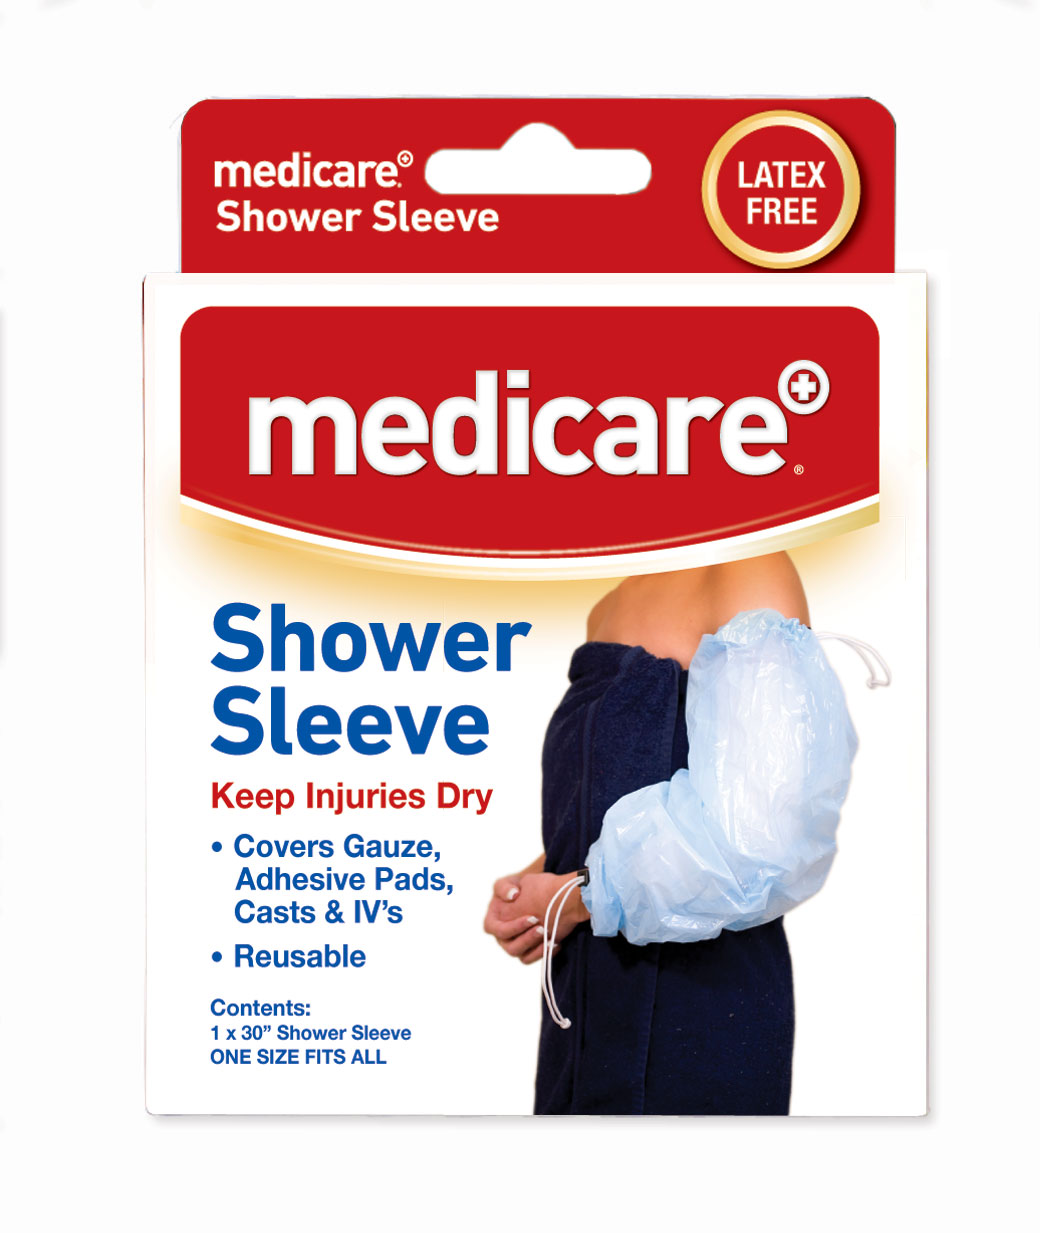 Medicare shower sleeve rosslare pharmacy for Does medicare cover bathroom equipment